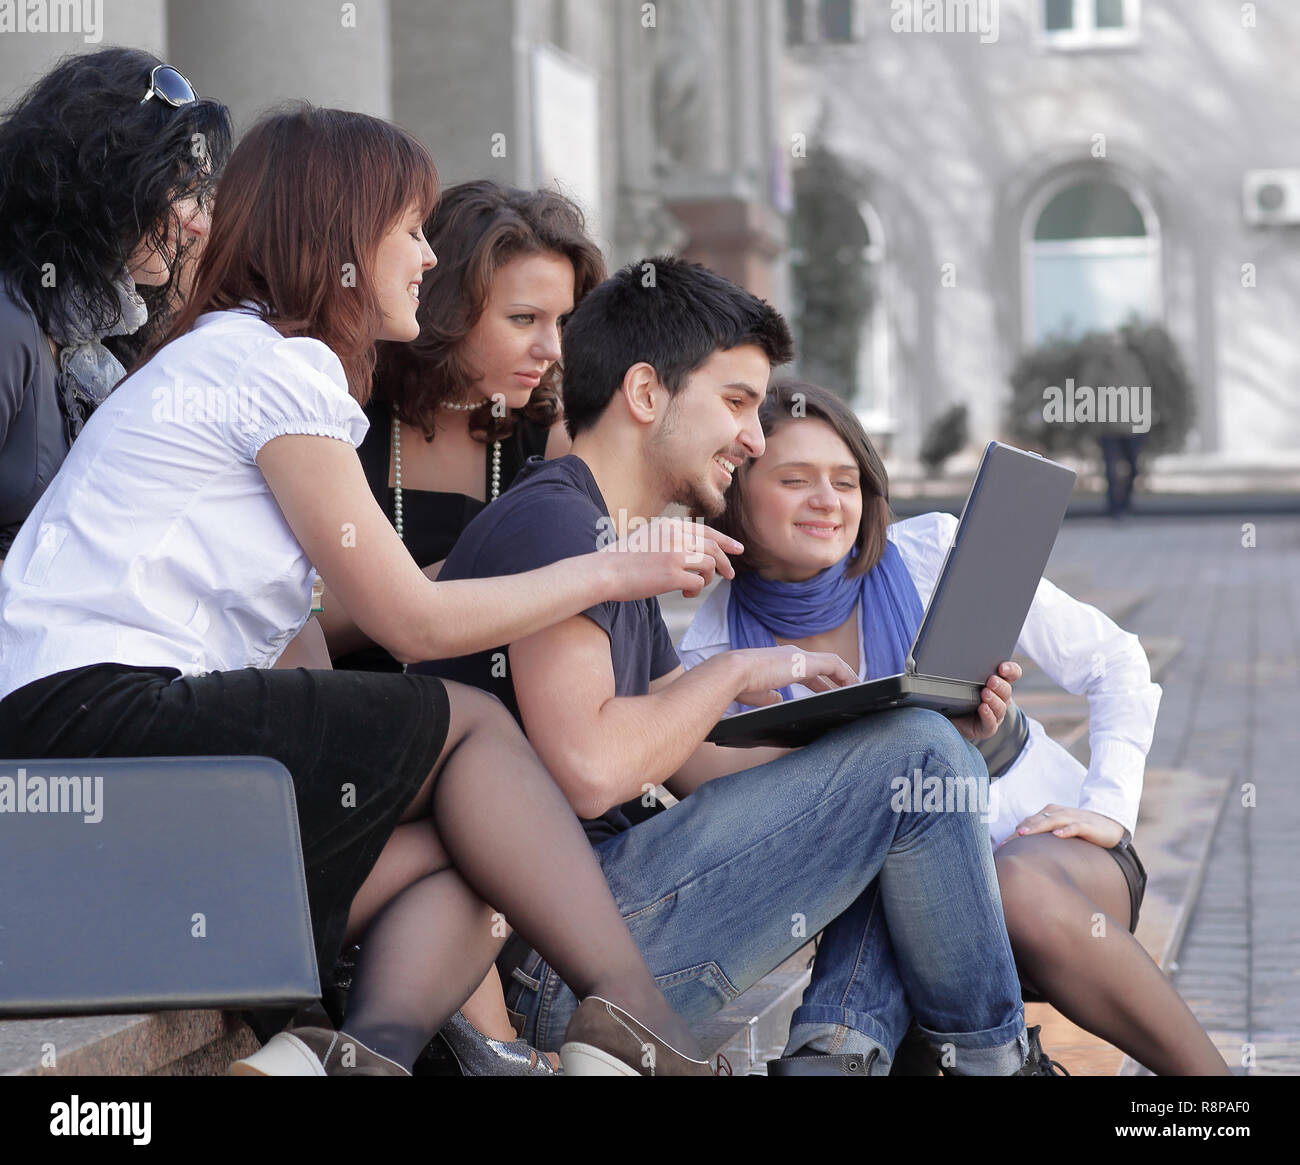 group of fellow students with books and laptop - Stock Image